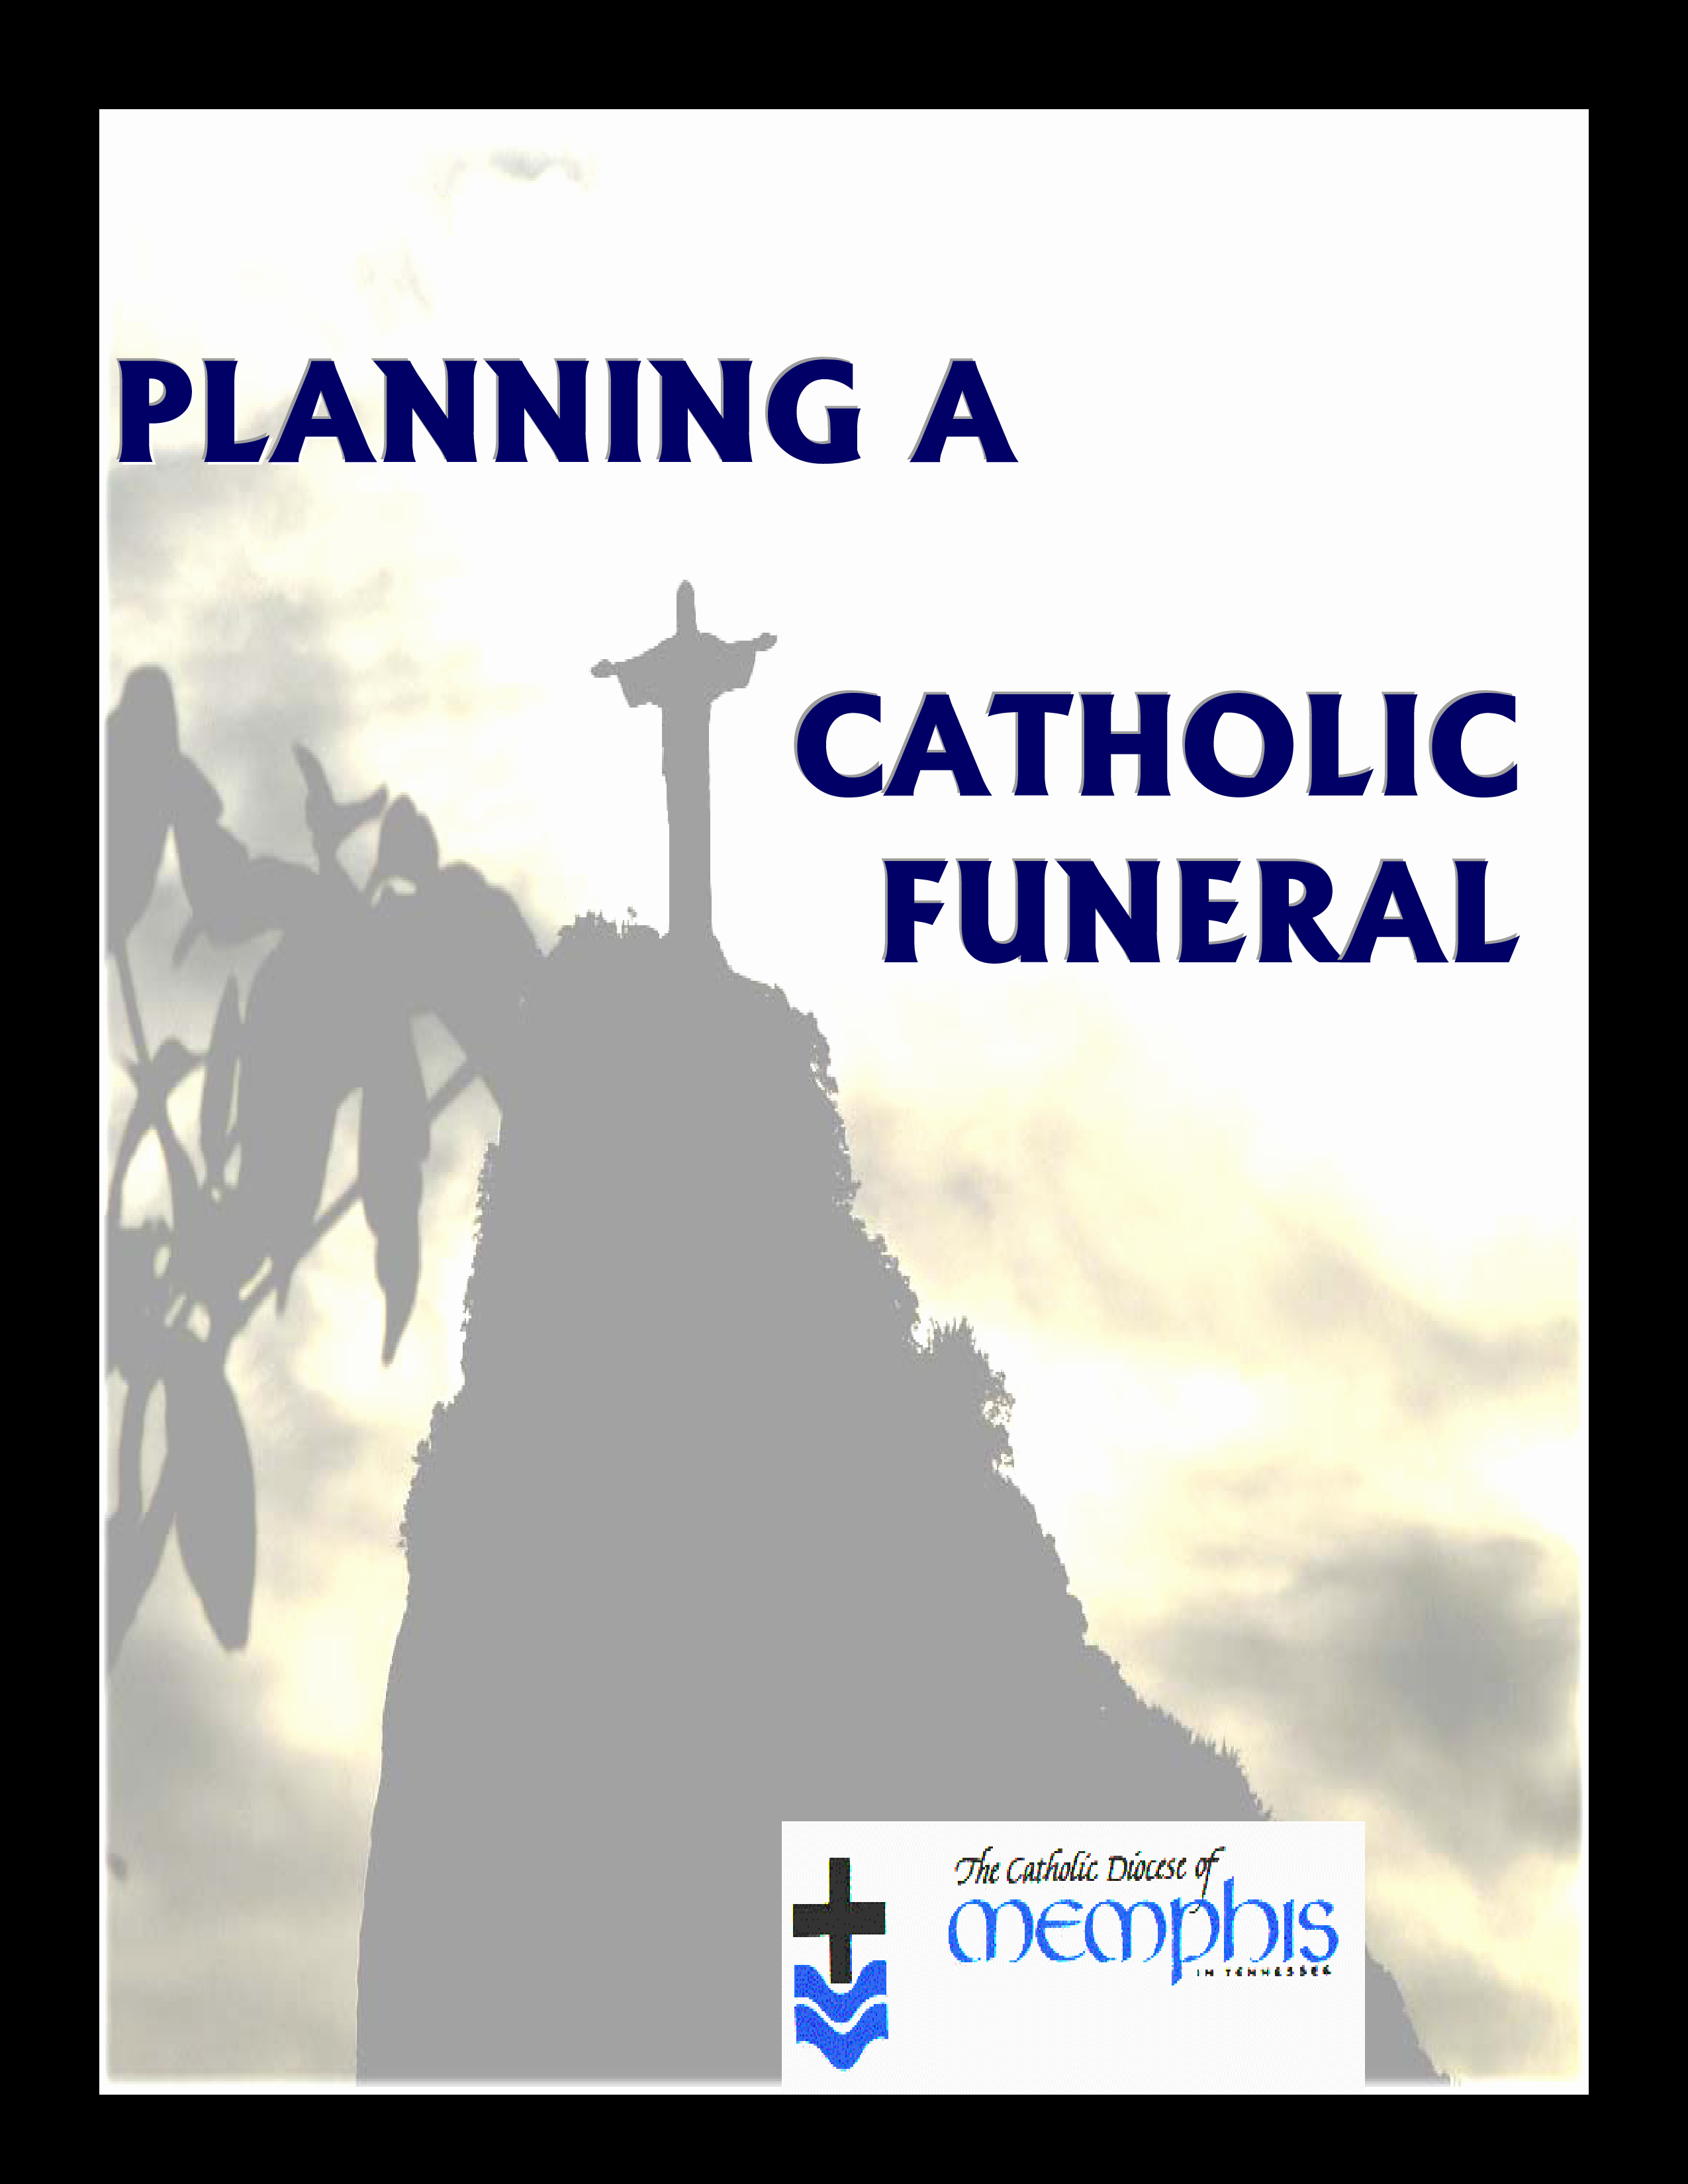 Funeral Mass Program Template Fresh Catholic Funeral Mass Program